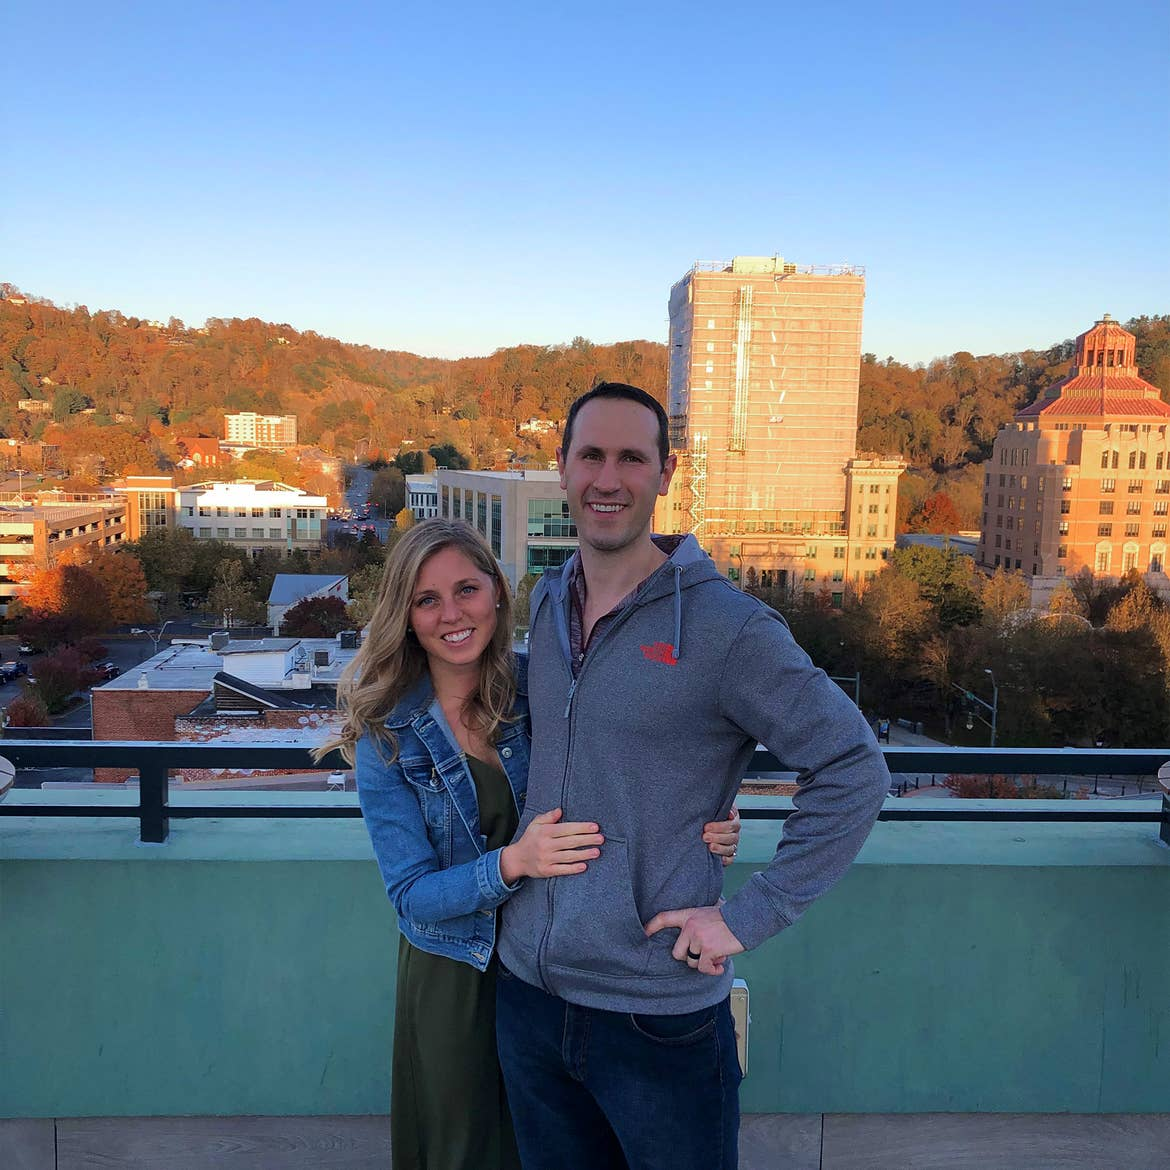 A blonde woman (left) wearing a denim jacket and green maxi dress hugs a man (right) wearing a grey zip-up hoodie on a rooftop bar overlooking the downtown area of Asheville, North Carolina.